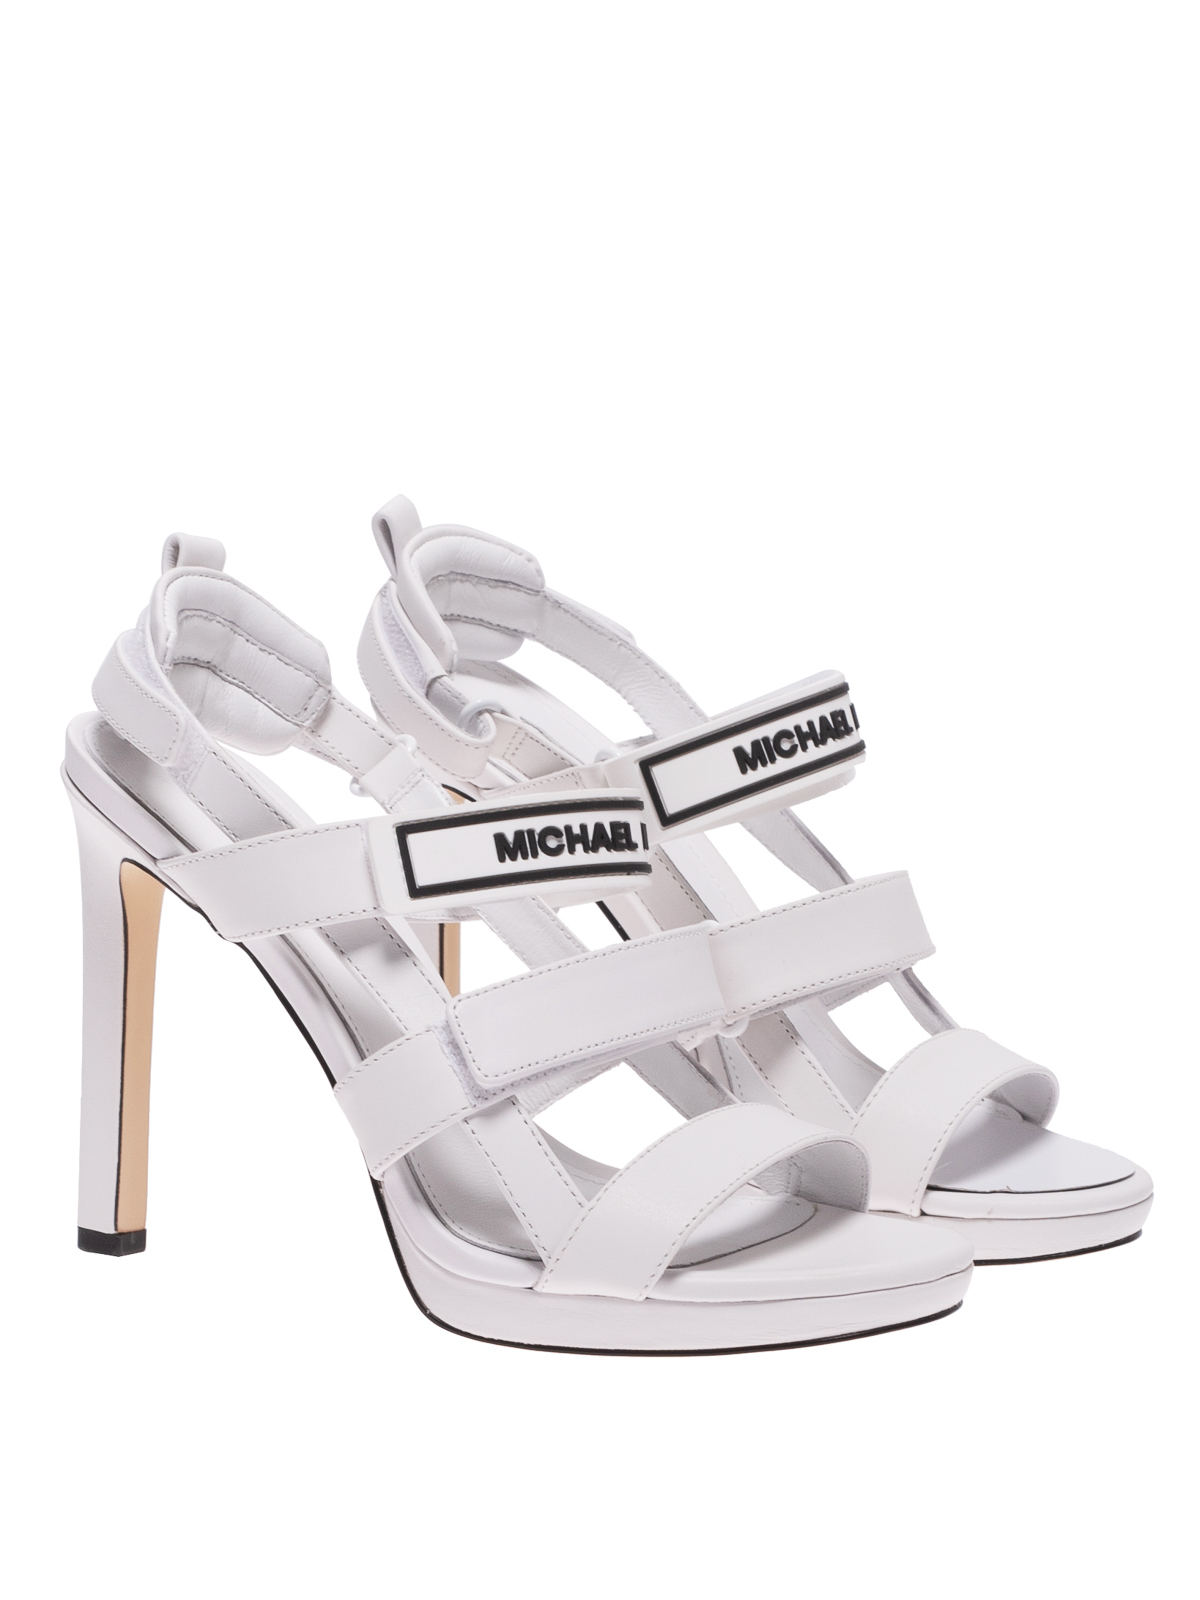 Demi white leather heeled sandals